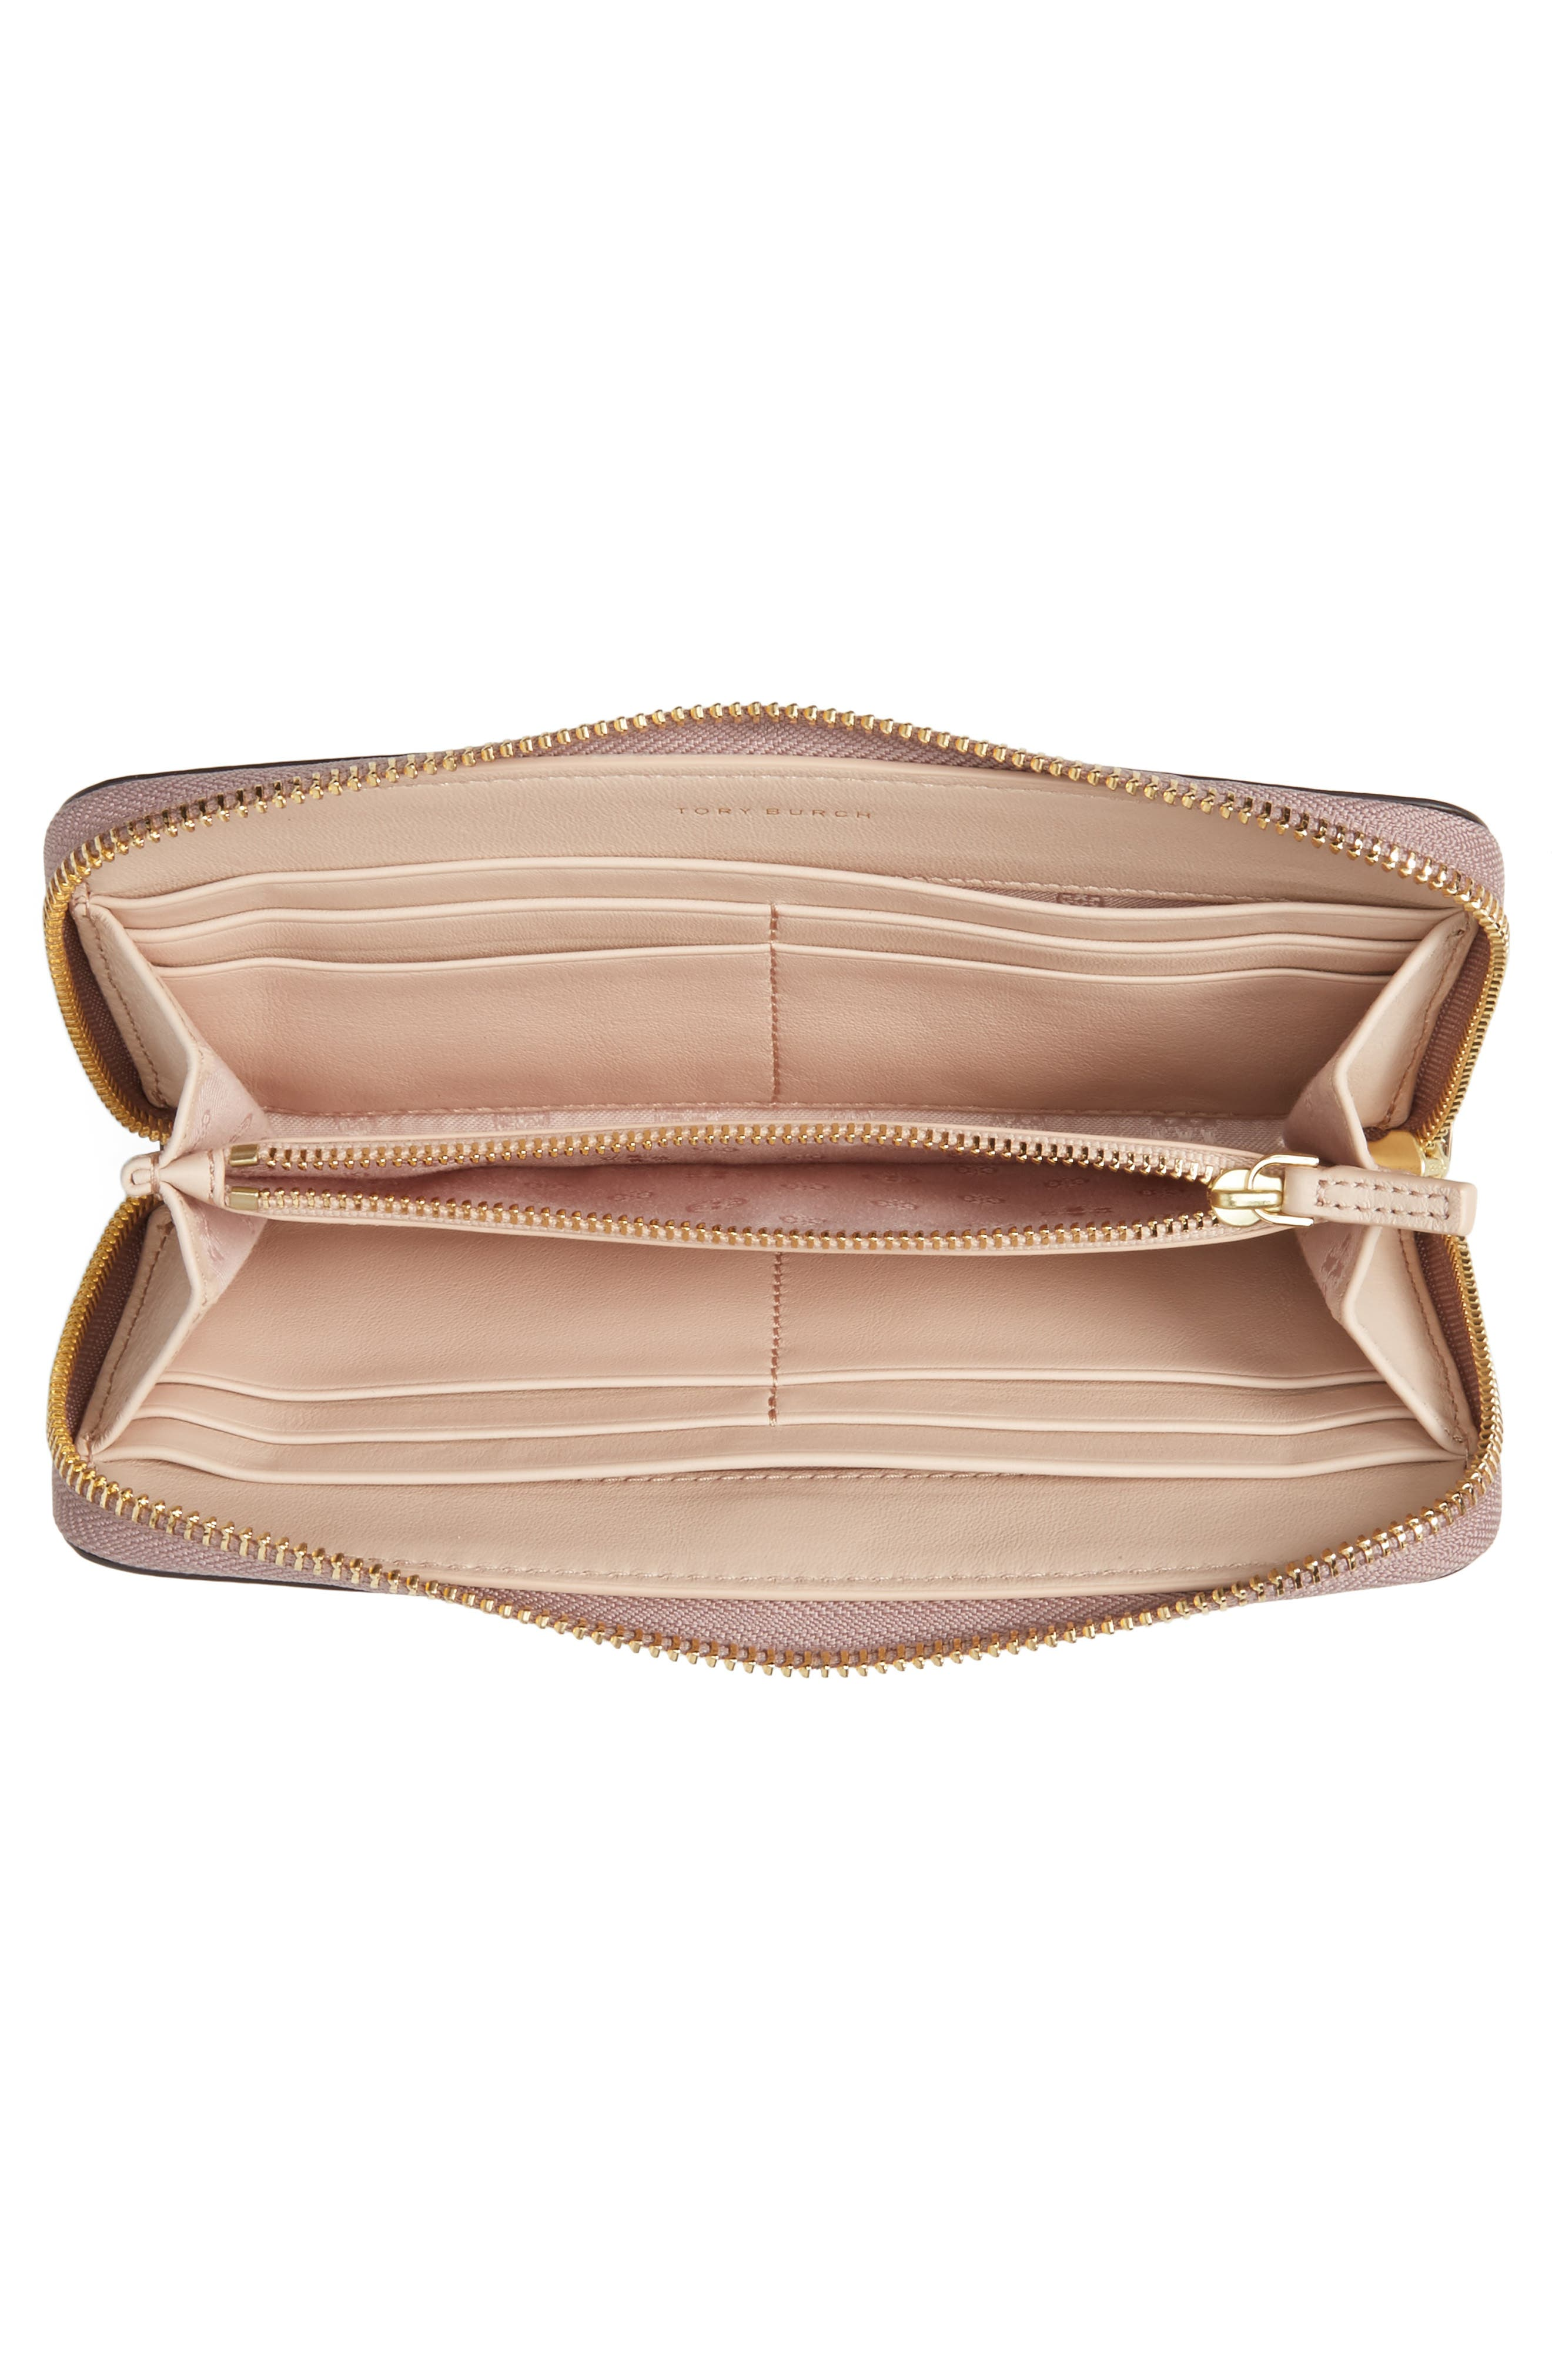 Alternate Image 2  - Tory Burch Robinson Metallic Leather Continental Wallet